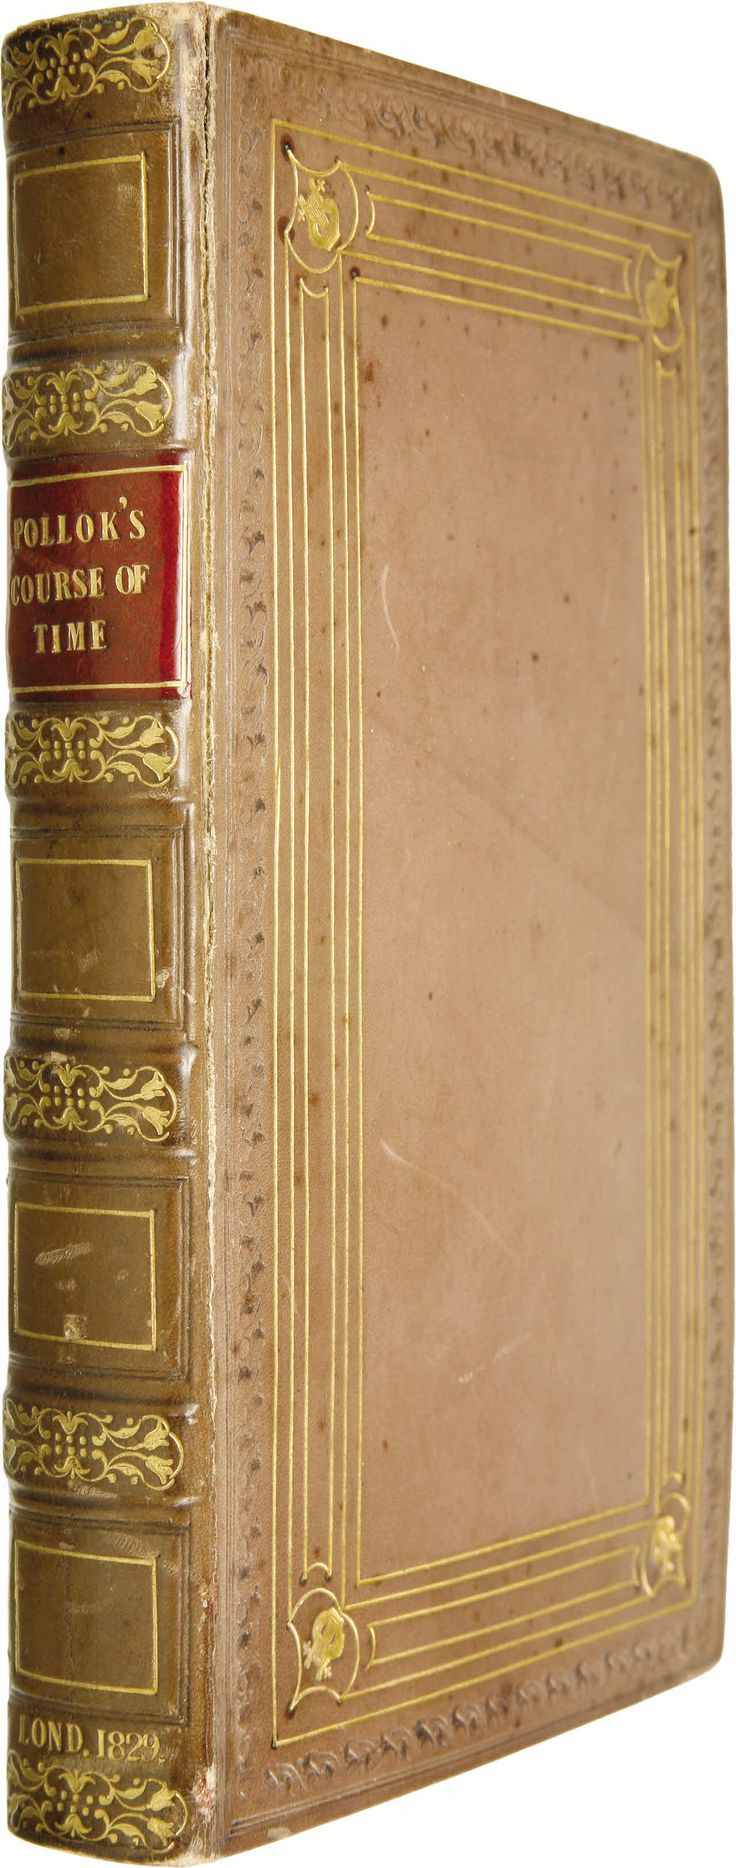 "Robert Pollok's The Course of Time: A Poem, in Ten Books (Edinburgh: William Blackwood and T. Cadell, London, 1829), eighth edition, 394 pages, light brown leather with gilt titles on a red title spine plate and gilt bordering on the spine and boards, 12mo (4.25"" x 7""). All edges gilt."